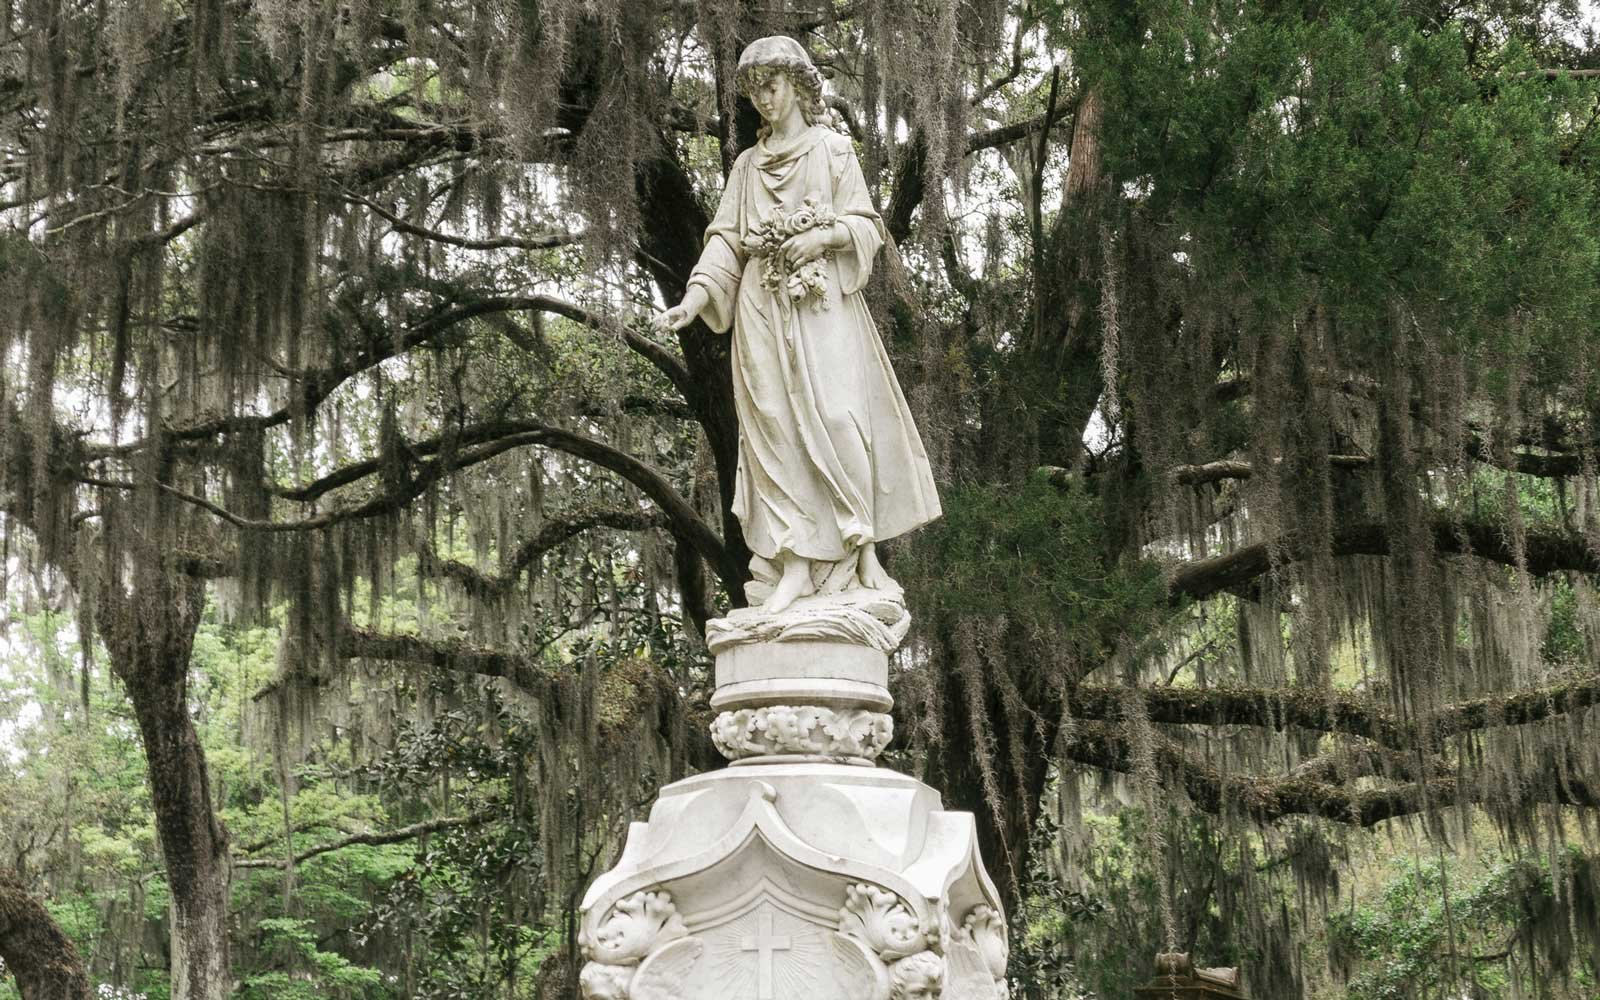 Angel statue and monument in Bonaventure Cemetery in Savannah, Georgia.